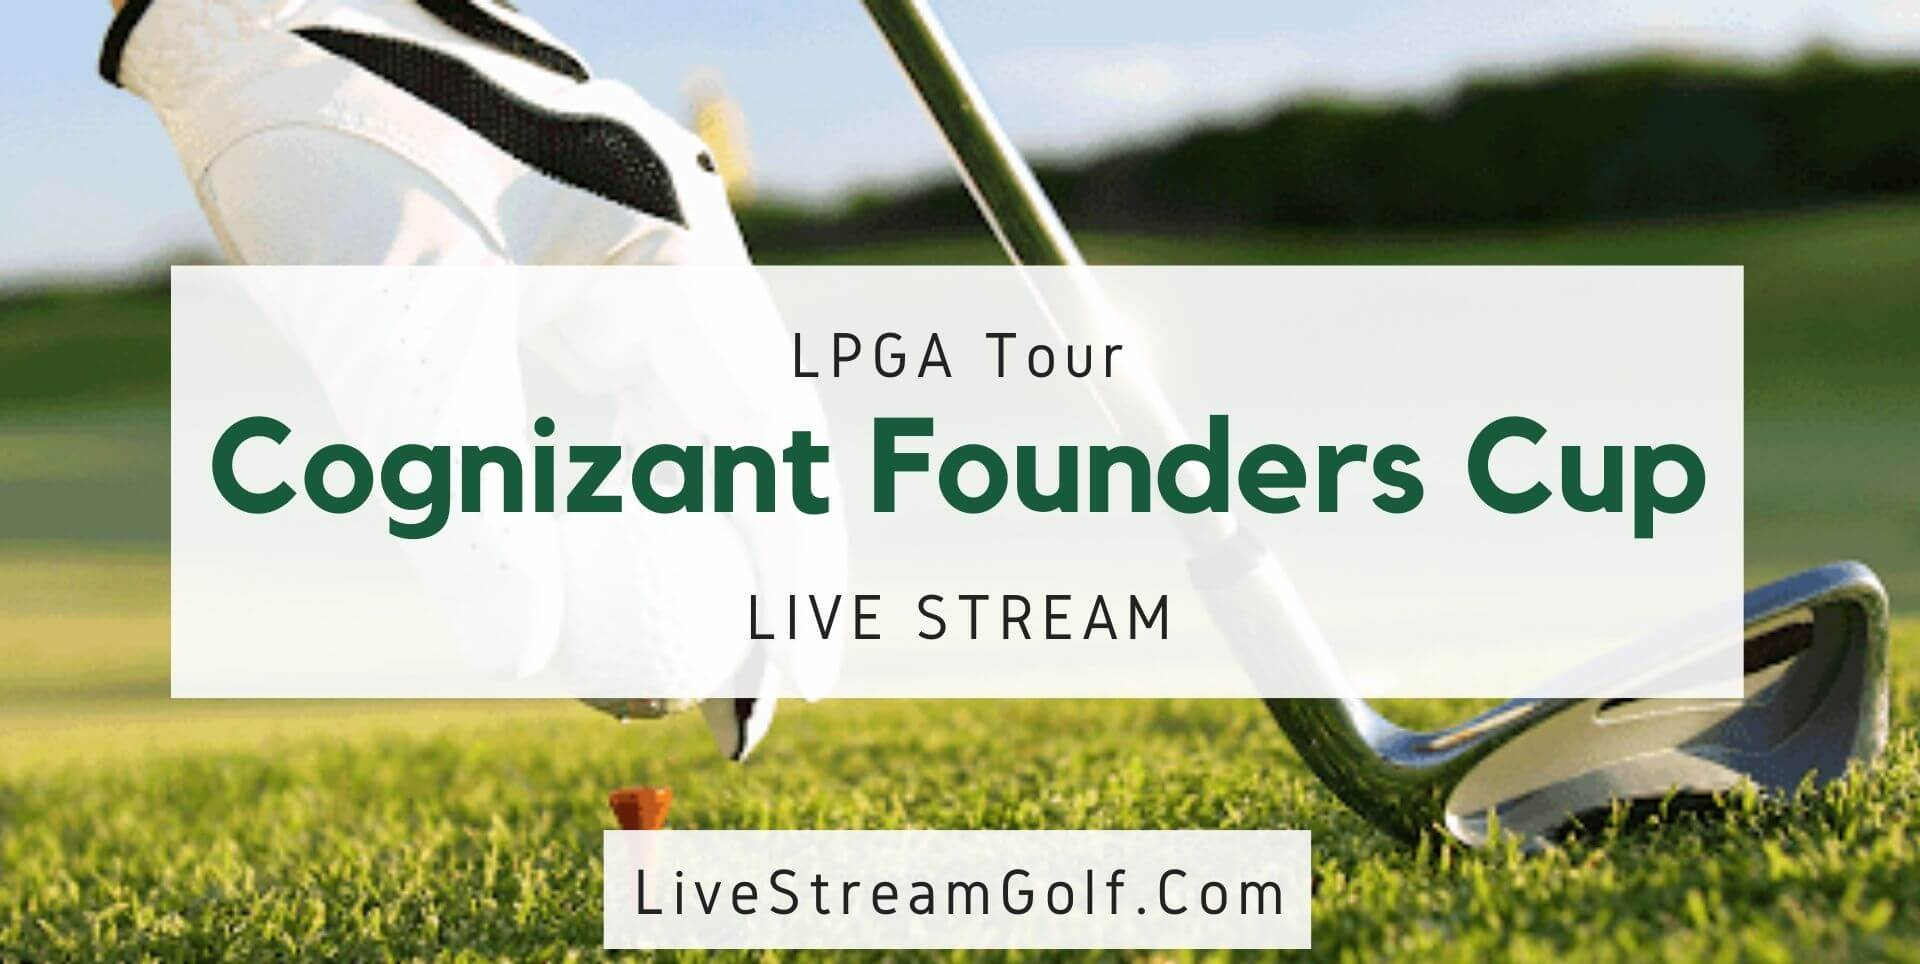 Cognizant Founders Cup Live Stream